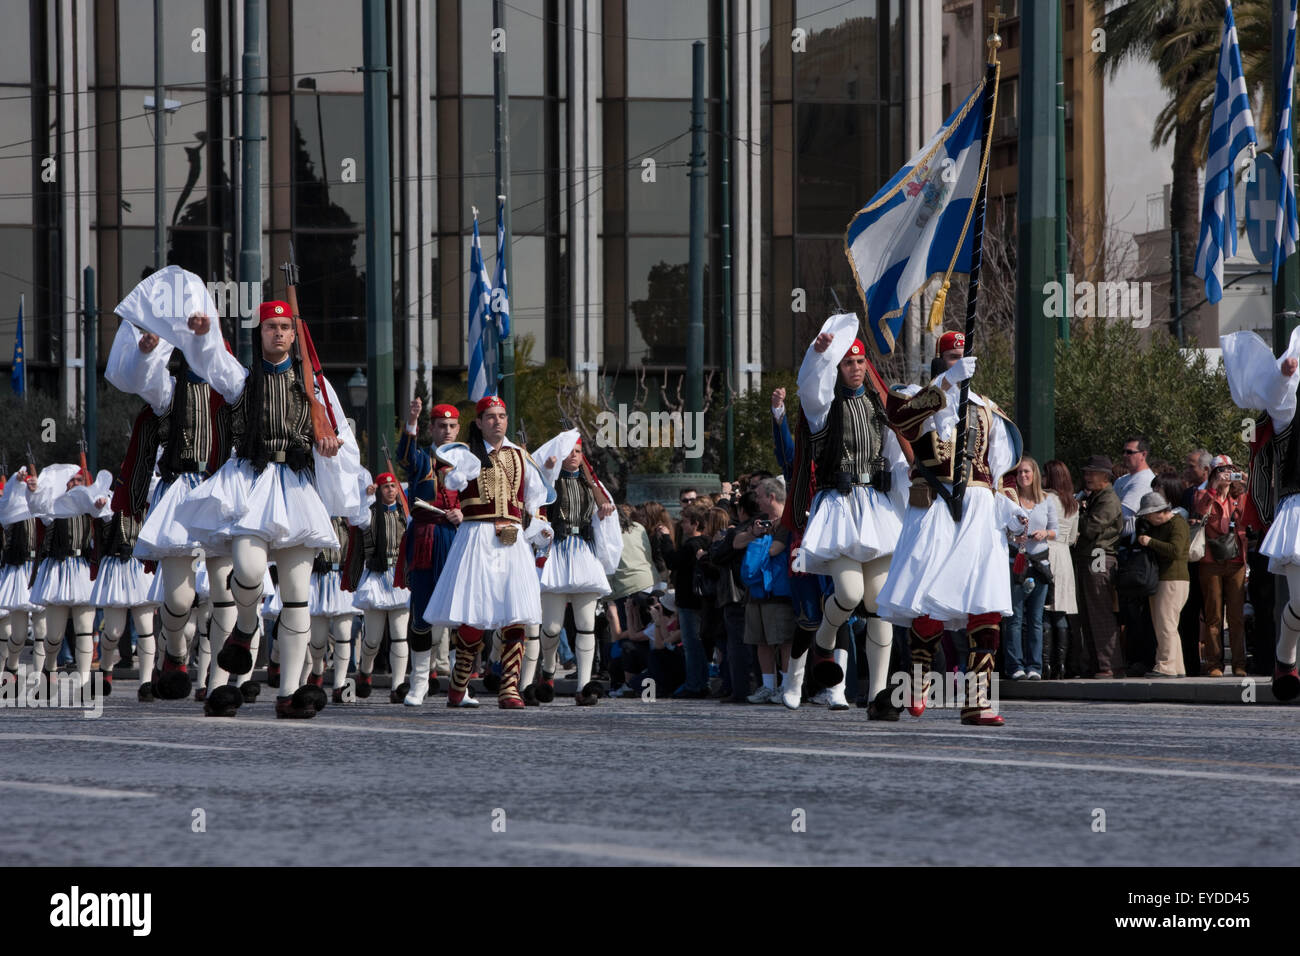 Greek guards (Tsoliades) regiment march outside Greek Parliament in Syntagma sq., to attend a ceremonial event. - Stock Image